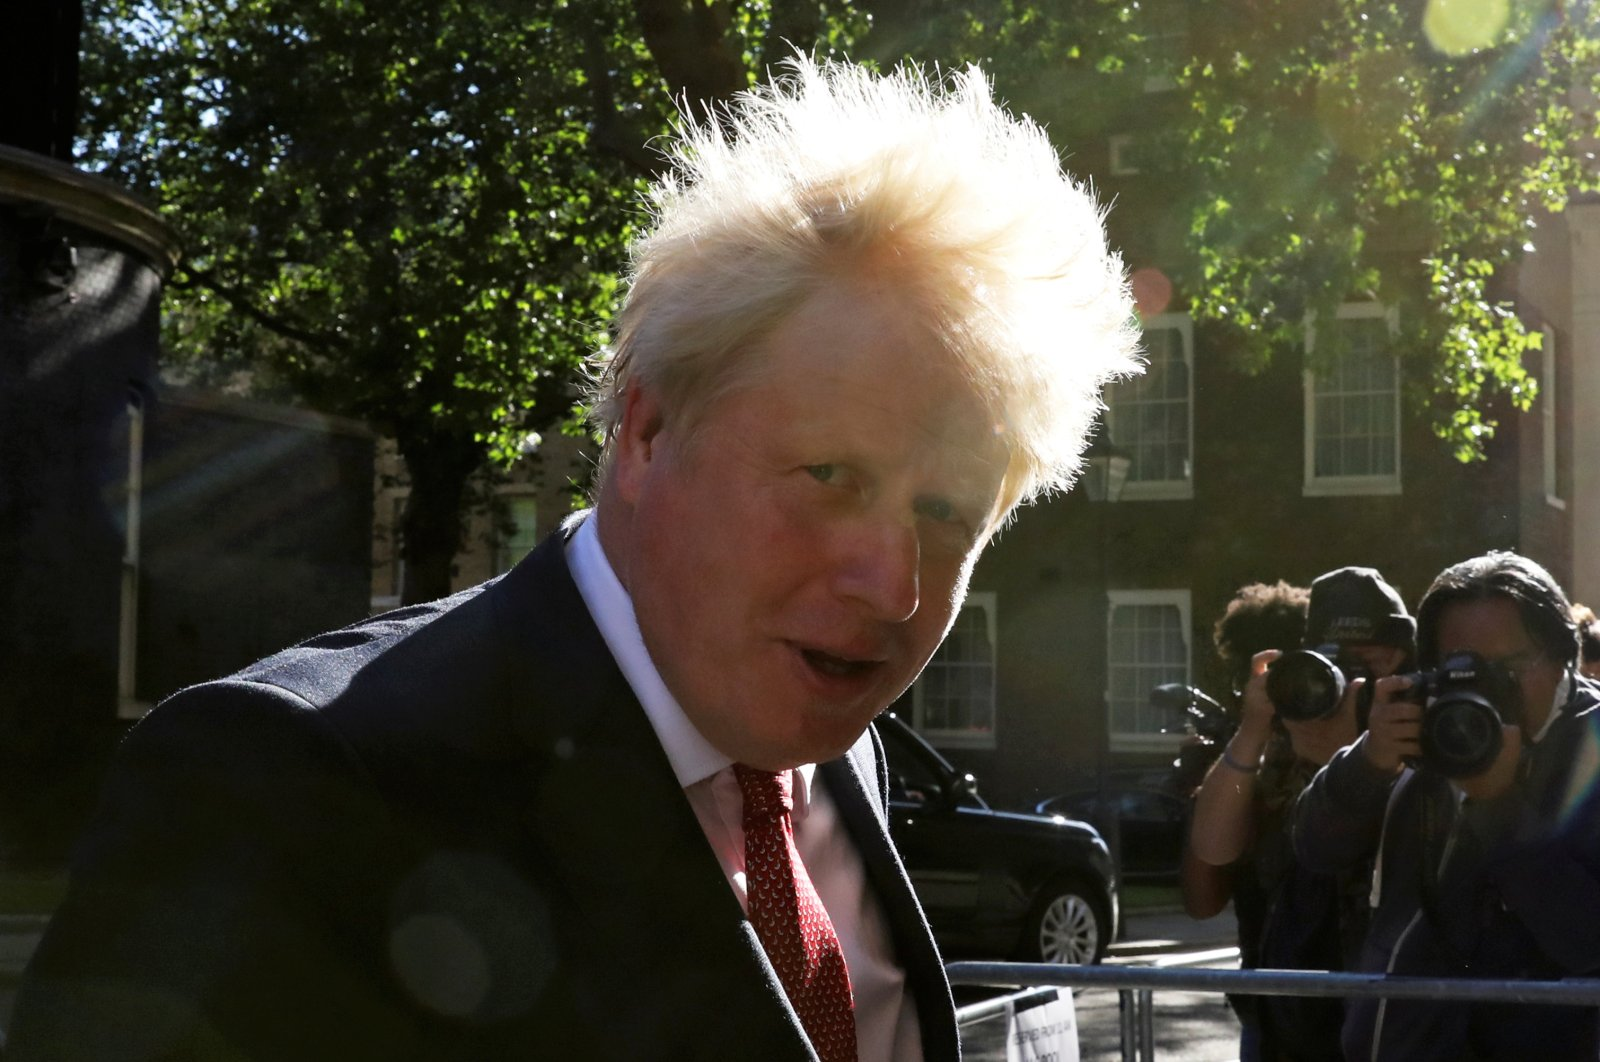 Britain's Prime Minister Boris Johnson arrives for a Cabinet meeting, the first since mid-March because of the coronavirus pandemic, at Downing Street in London, Britain, July 21, 2020. (Reuters Photo)